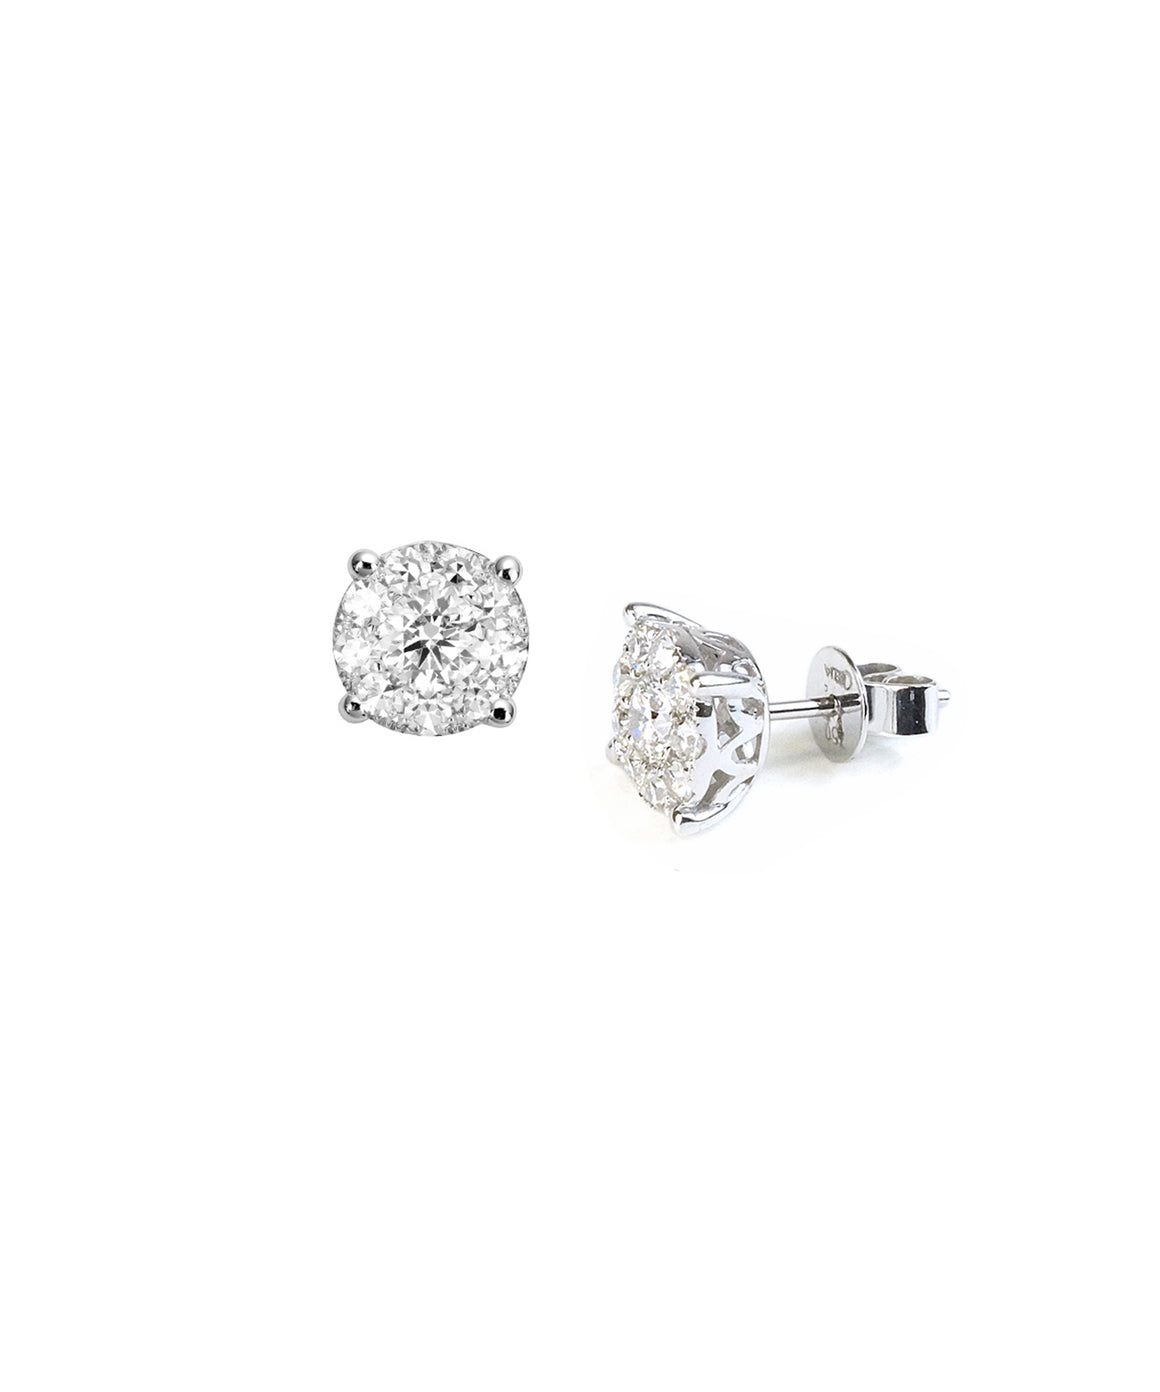 Diamond 1.00 carat tw cluster ear studs